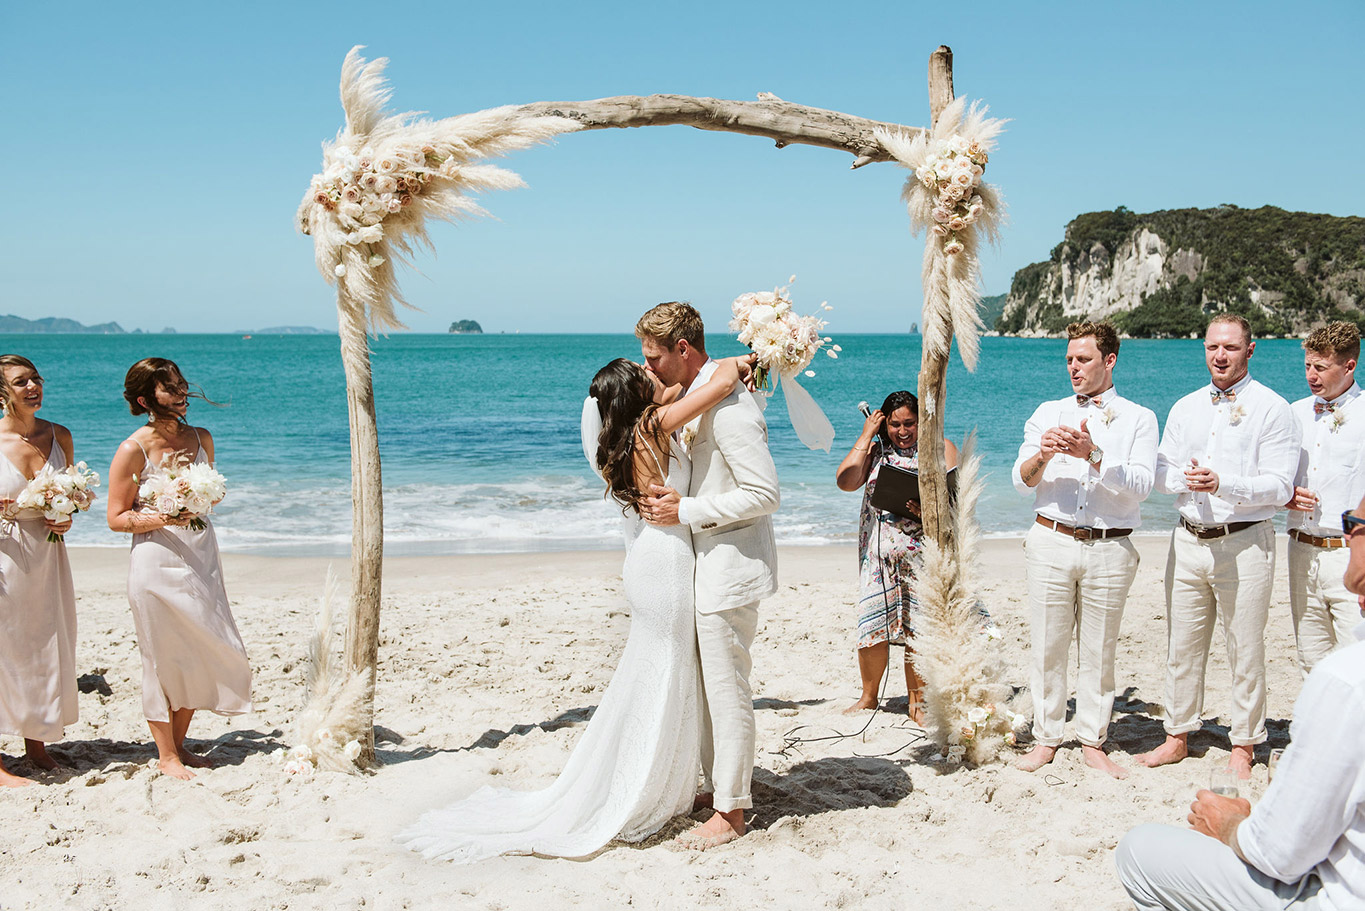 blush-arch-beach-wedding-flowers-auckland.jpg